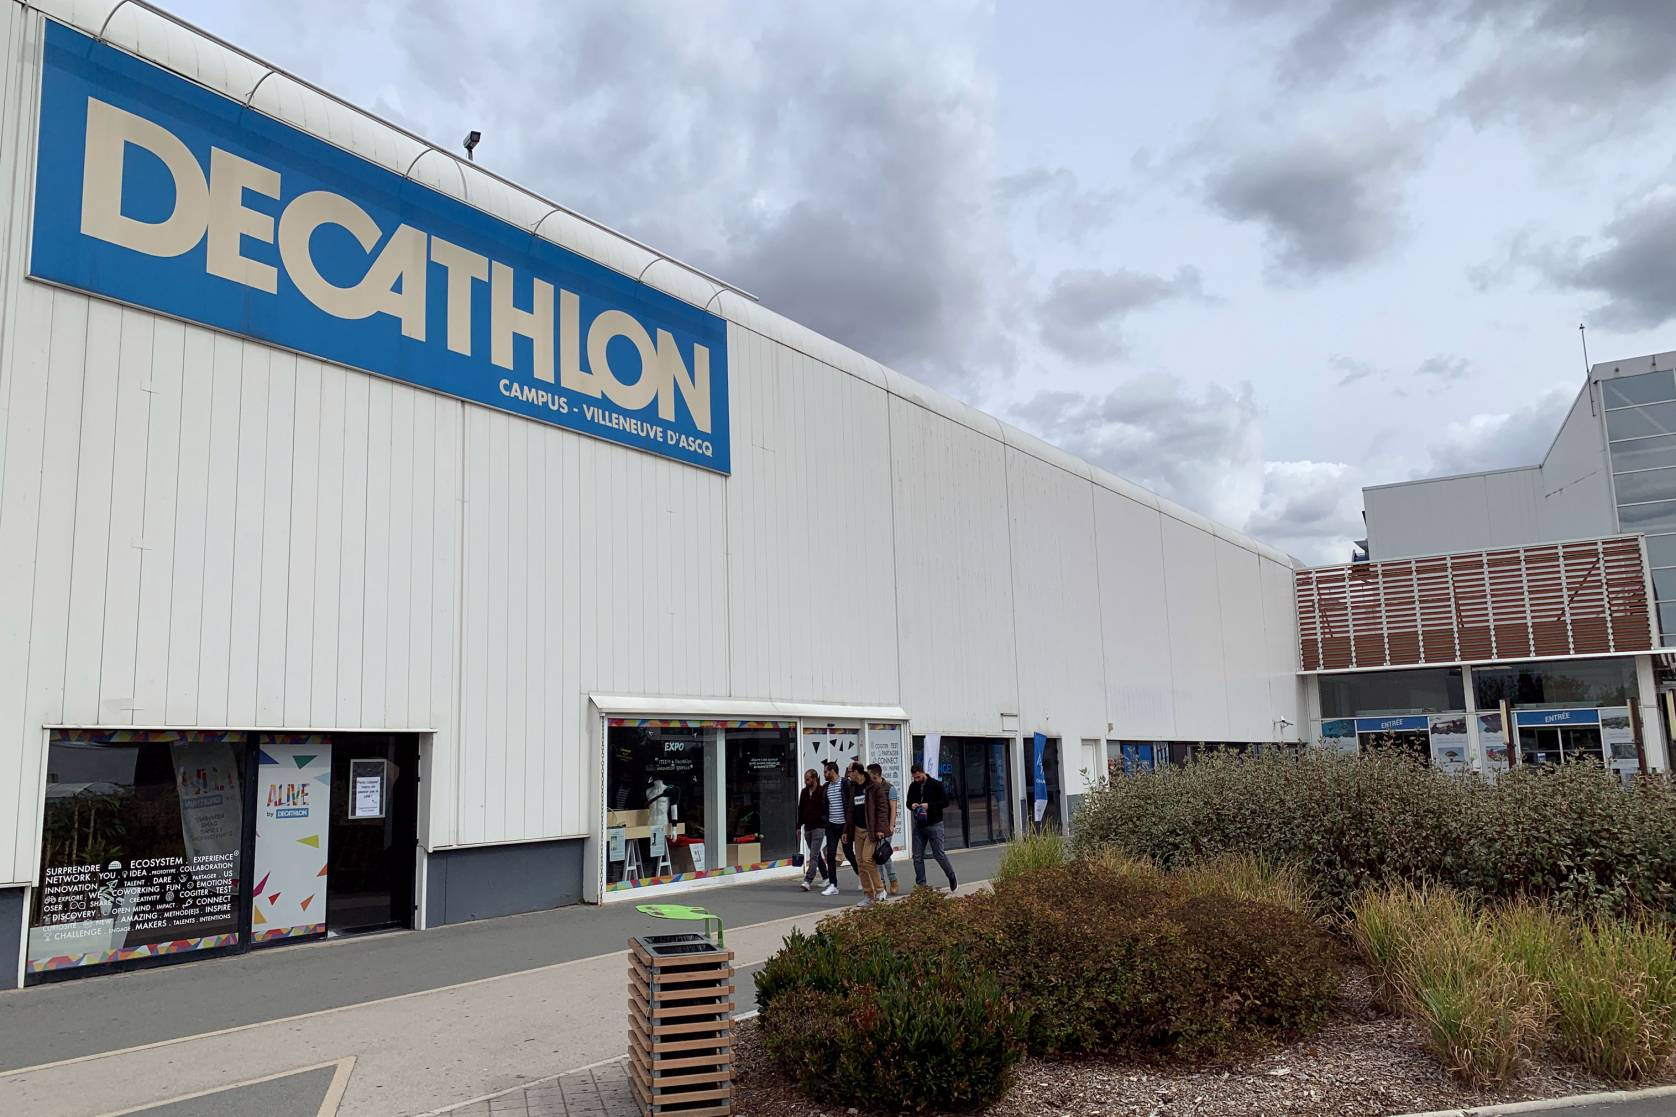 Decathlon sports store